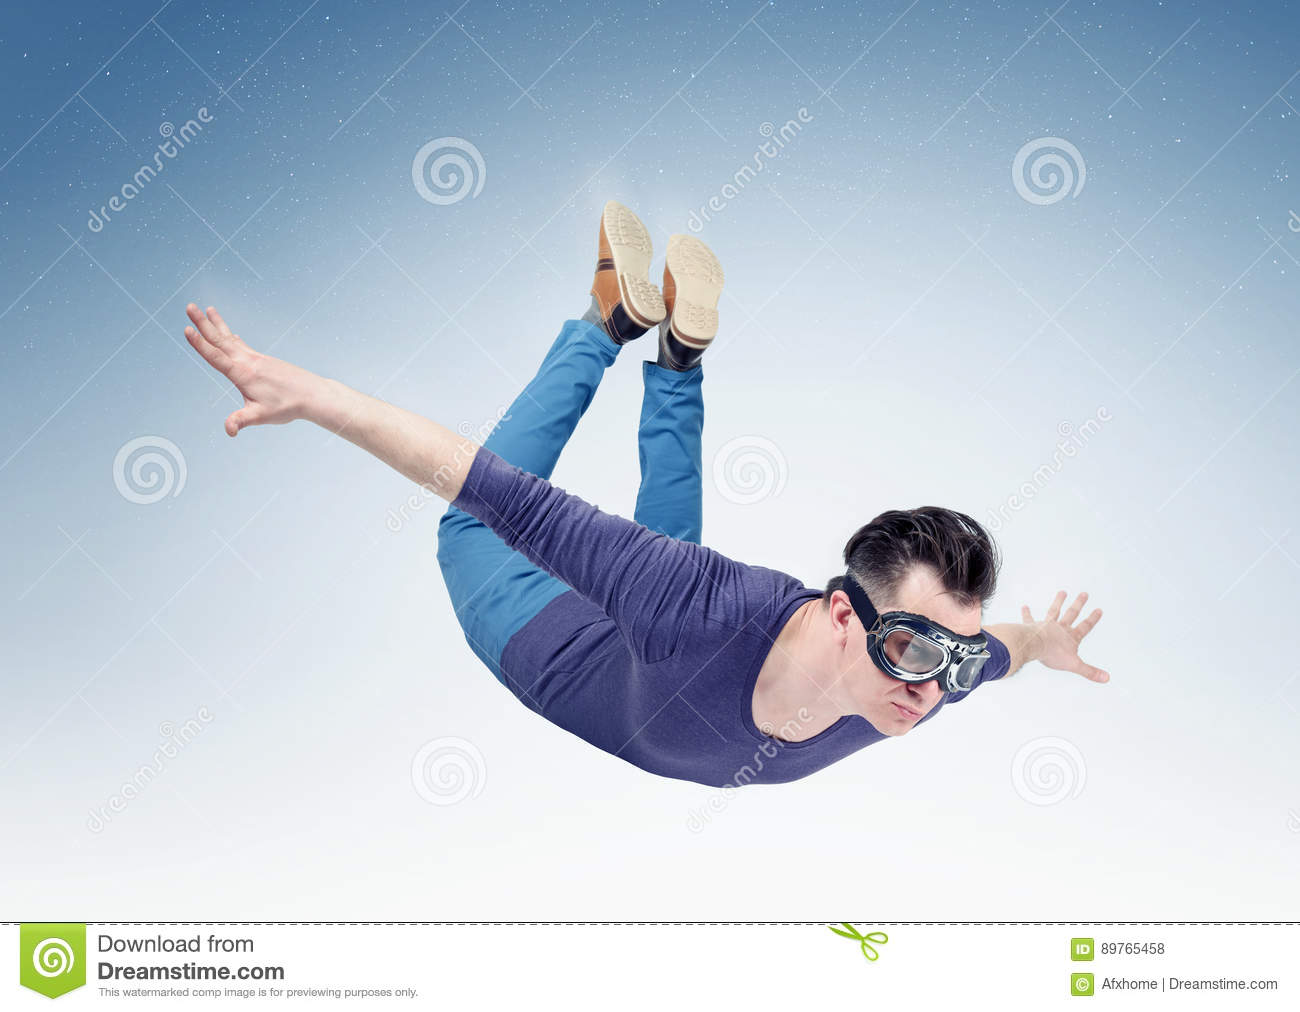 Crazy man in goggles is flying in the sky. Jump from orbit